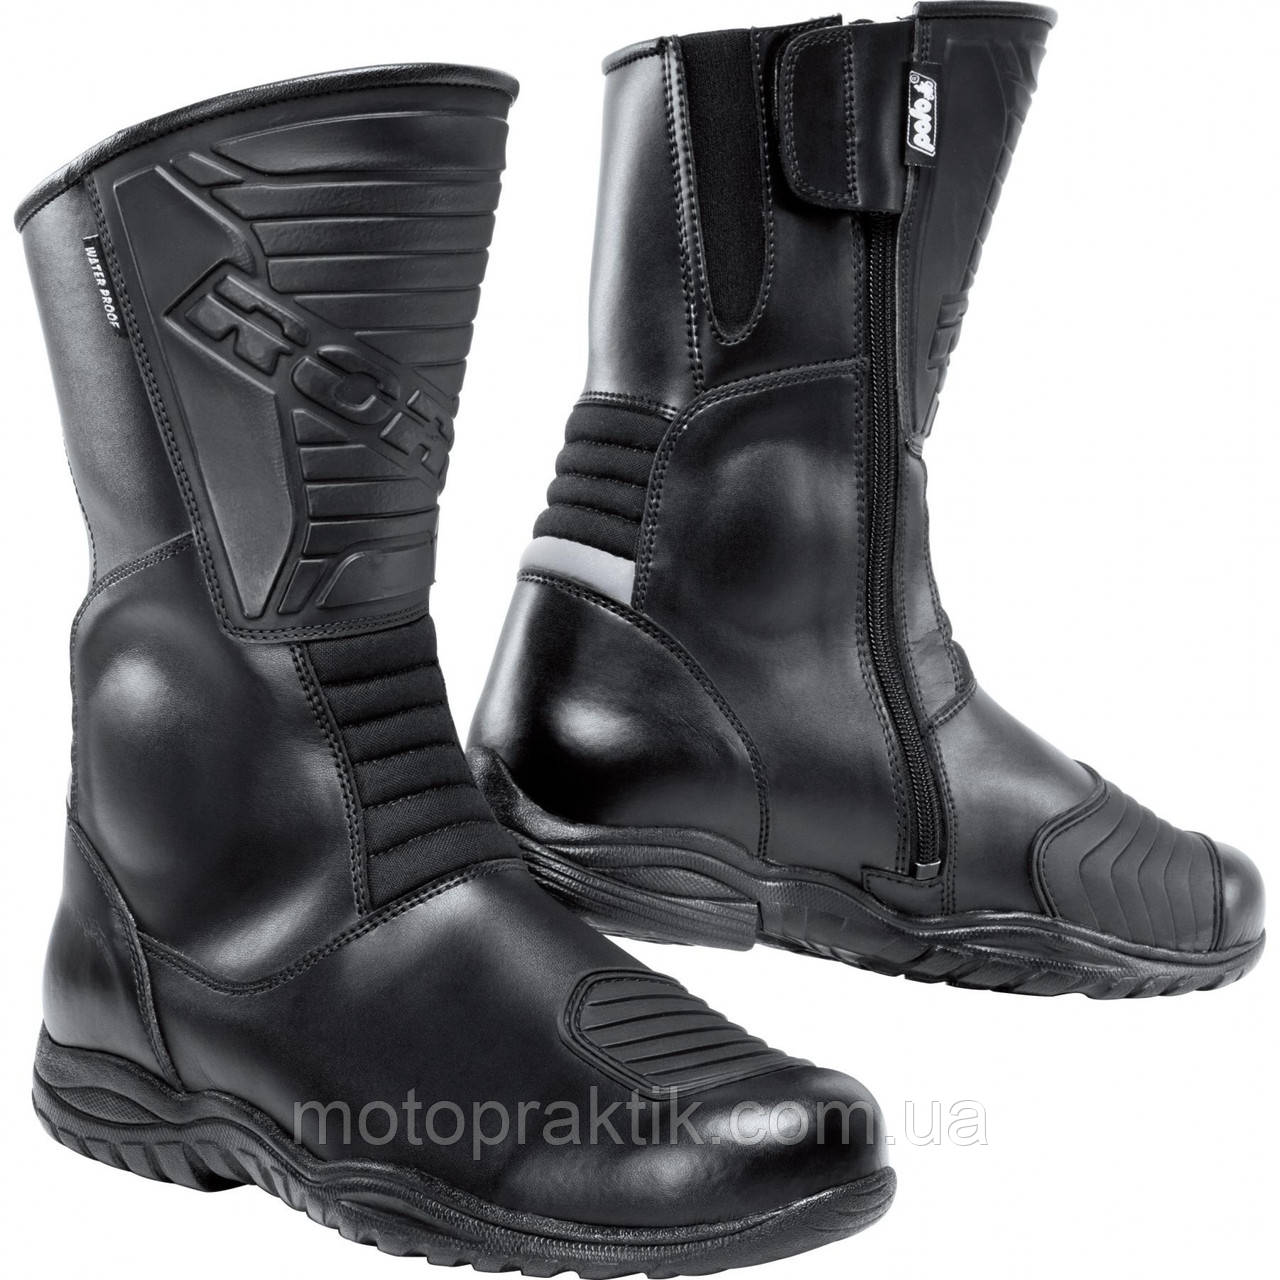 Road  Touring leather boots 1.0 Black, 36 Мотоботы дорожные